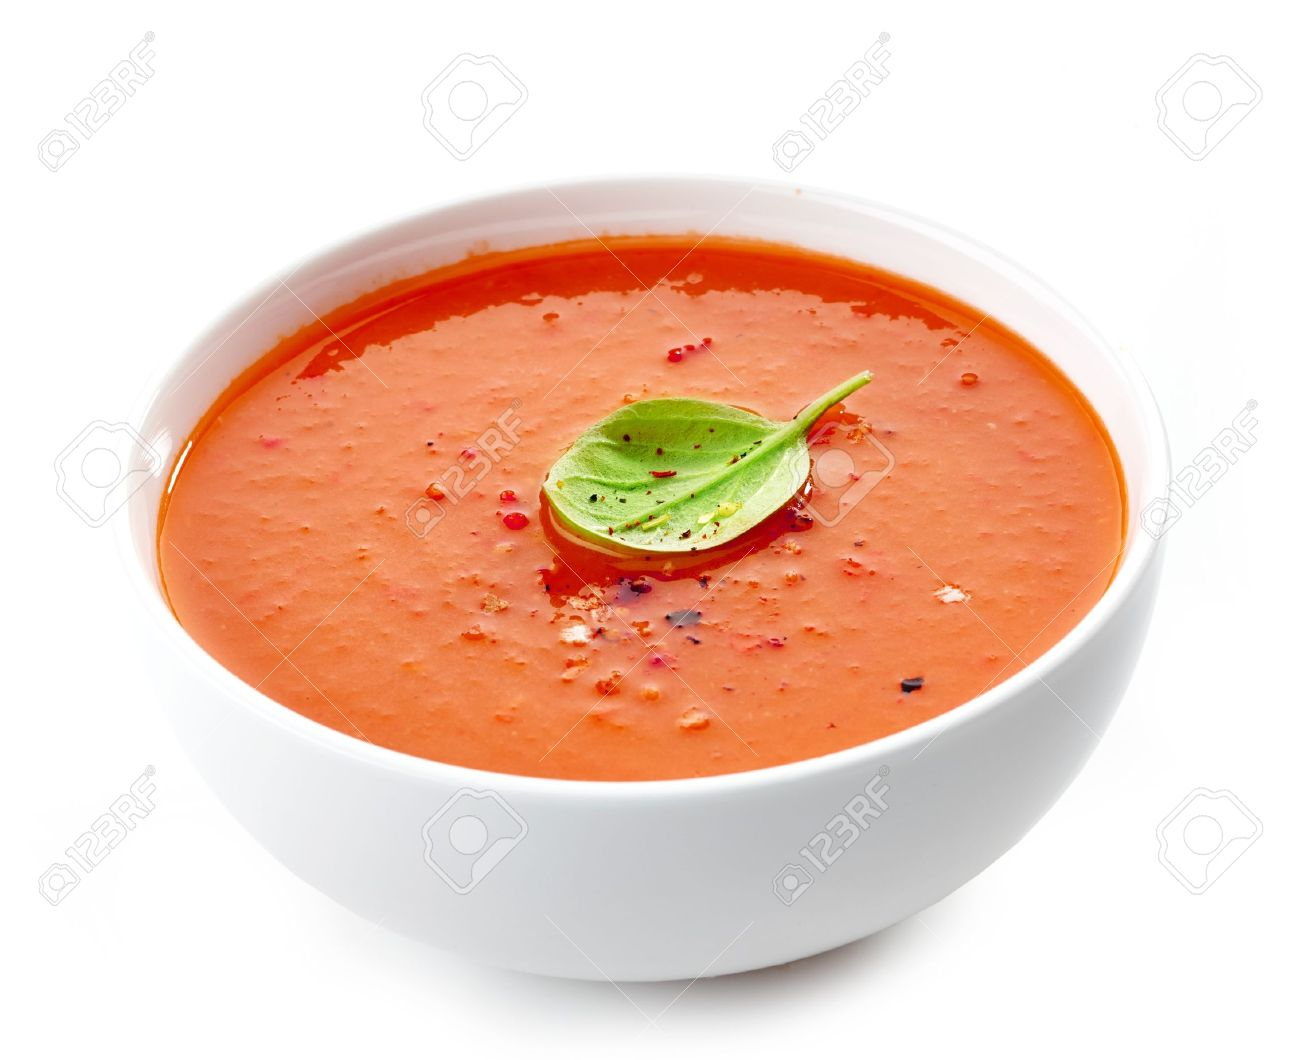 Bowl Of Tomato Soup On A White Background Stock Photo Picture And 1300x1060